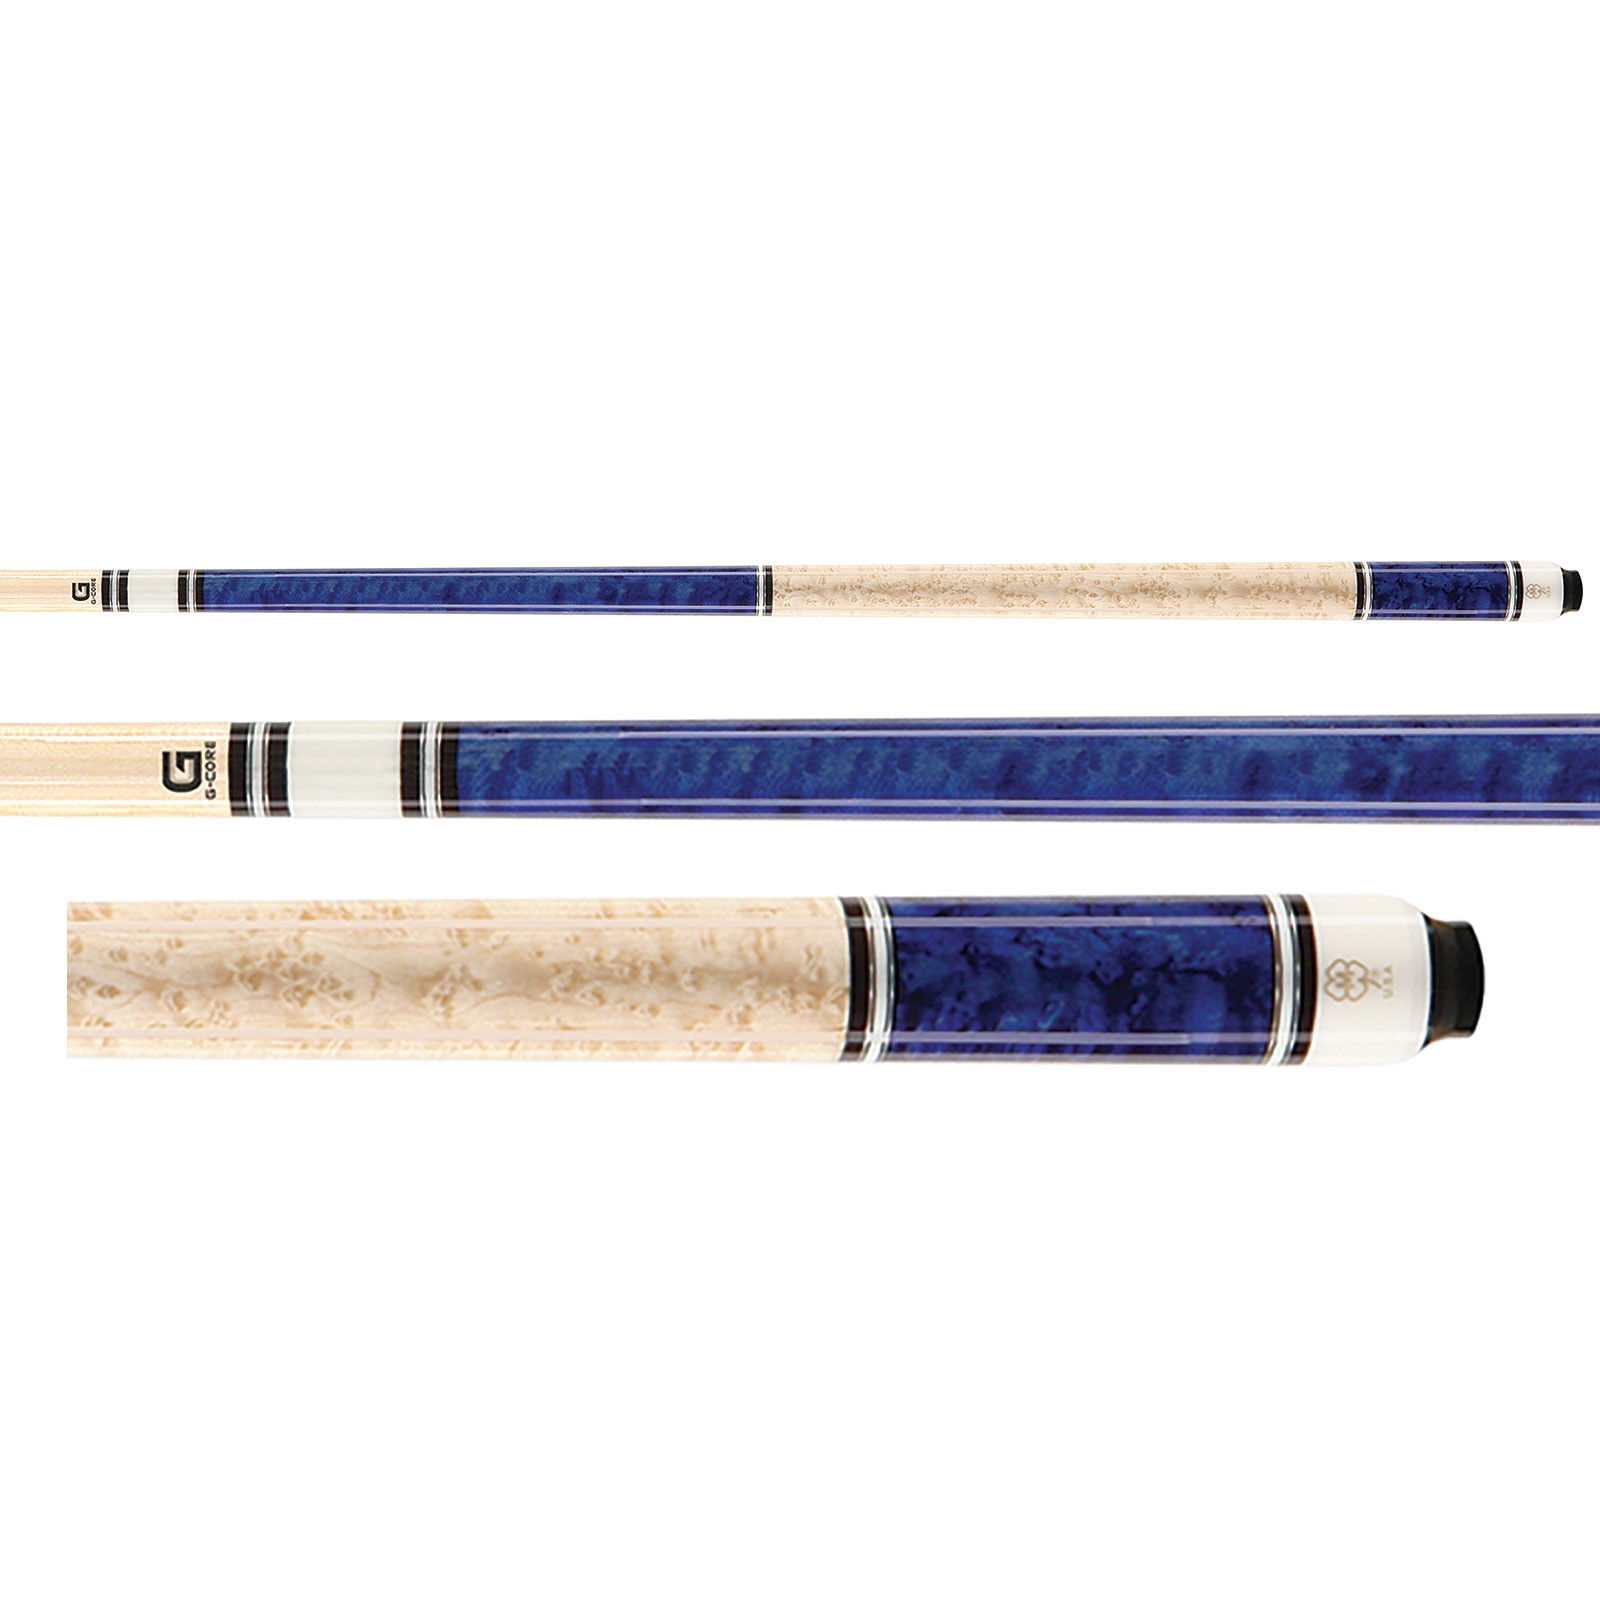 McDermott G230 G-Series Pool Cue